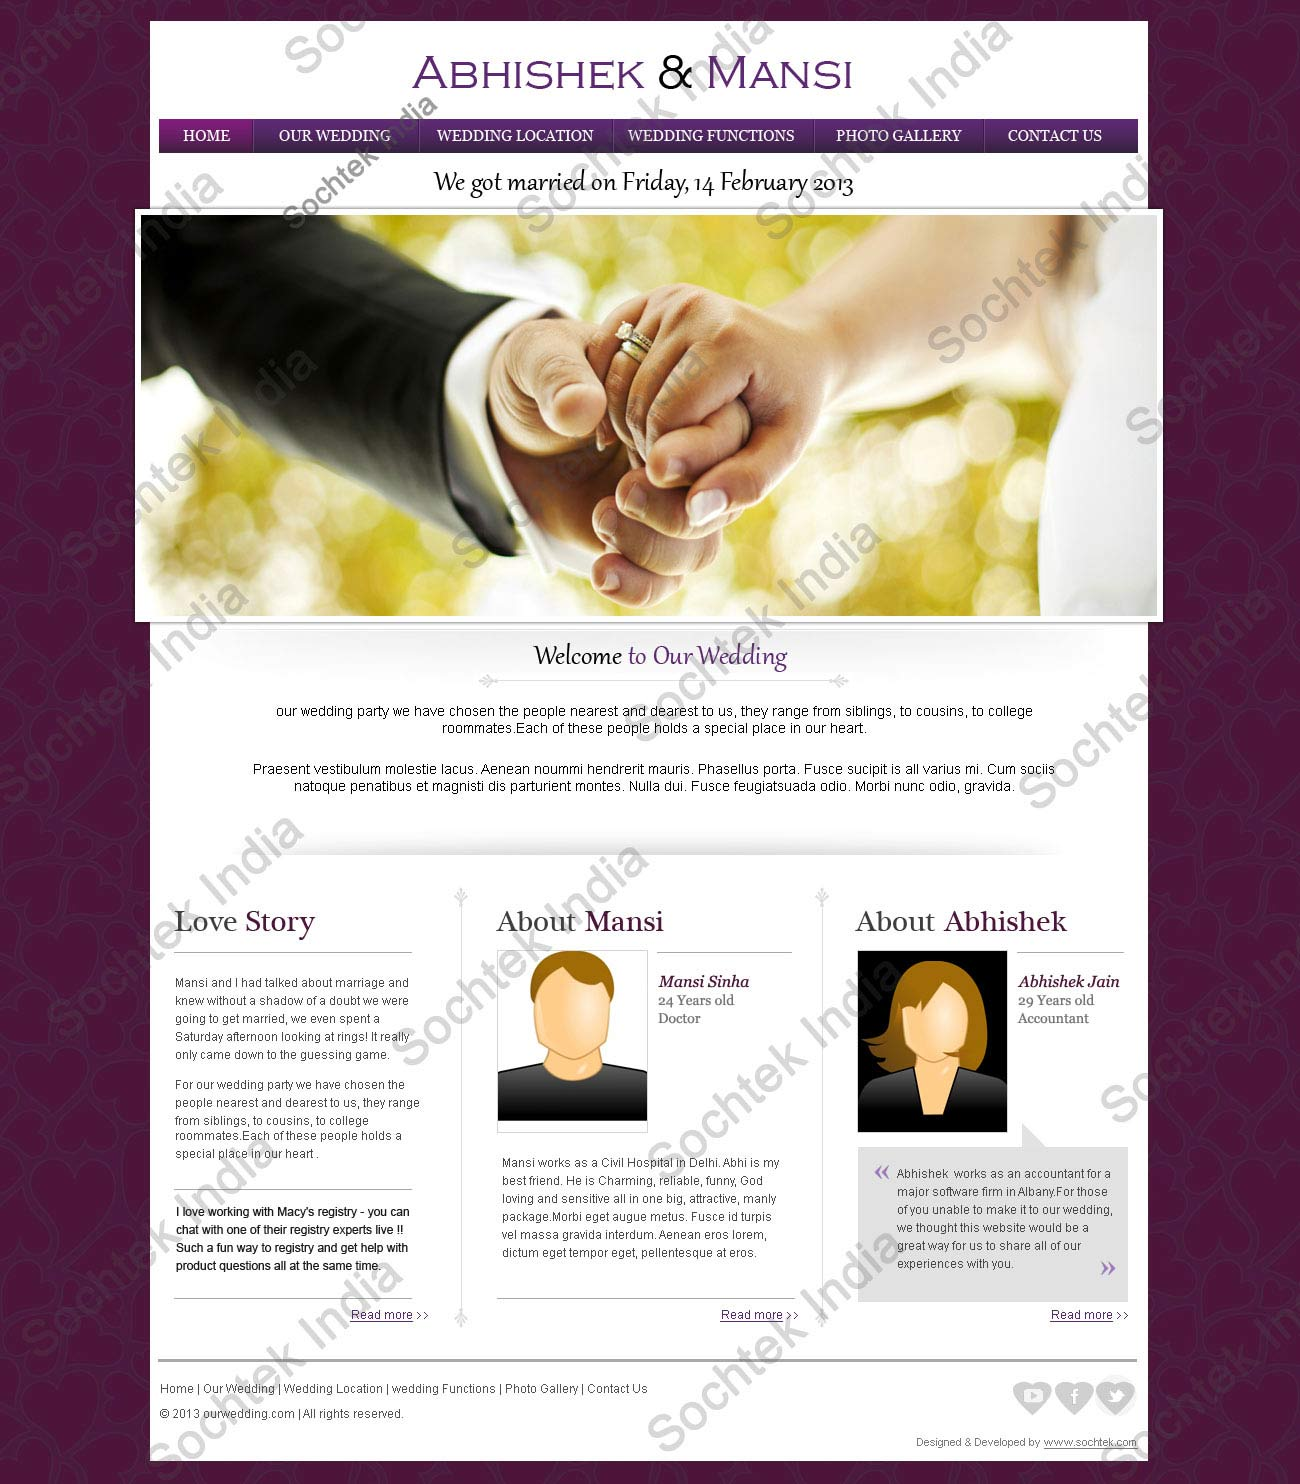 wedding-website-design4